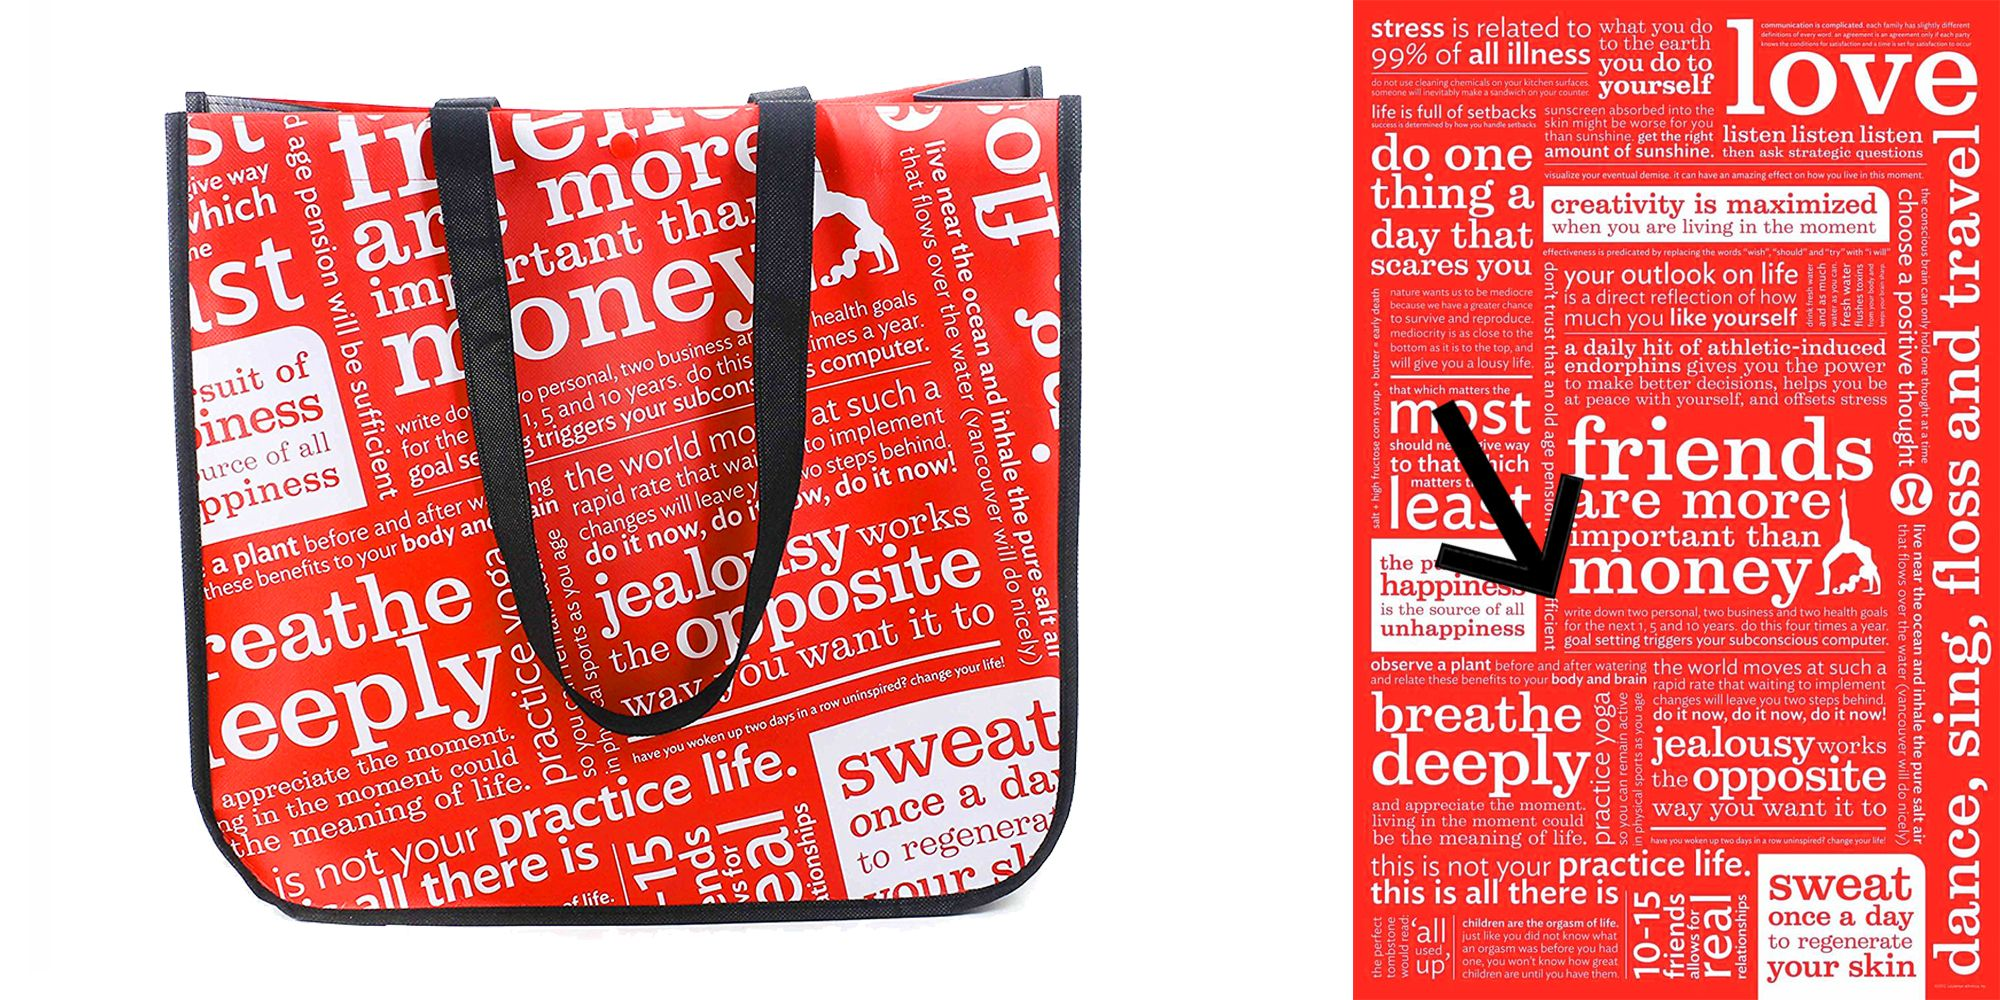 Lululemon Printed Controversial Sunscreen Message On Their Tote Bag Controversy